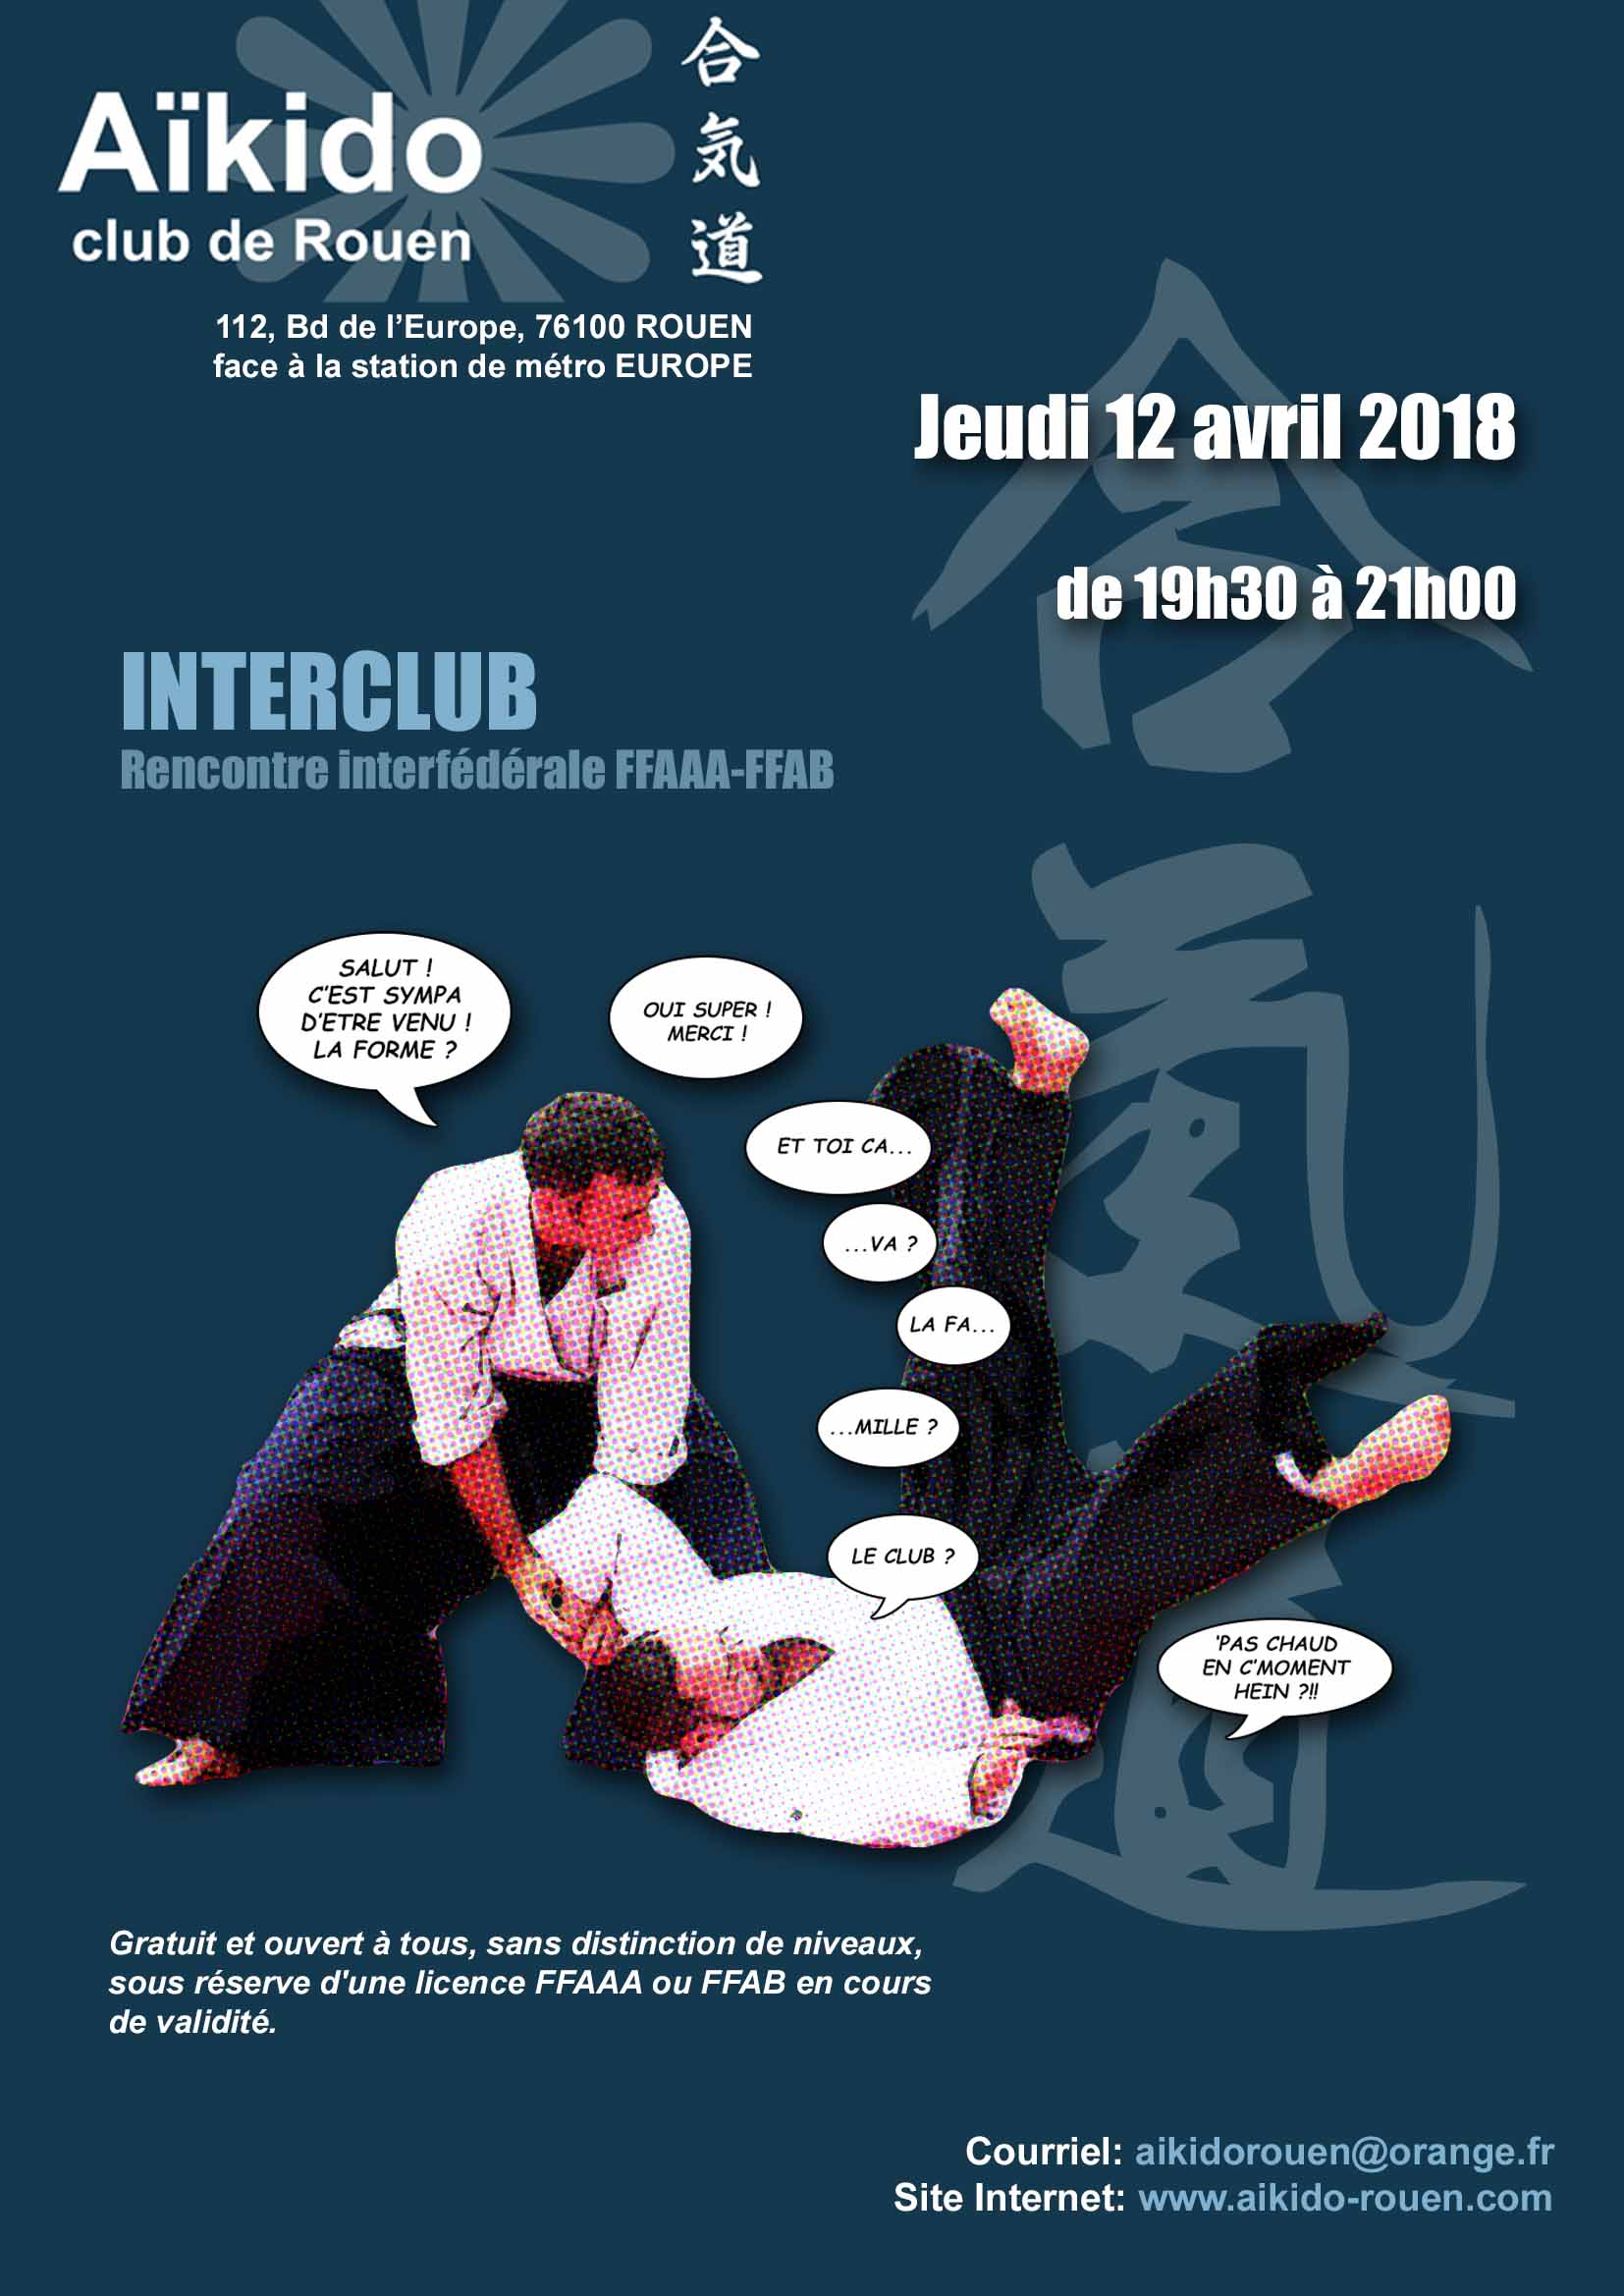 Interclub à Rouen jeudi 12 avril